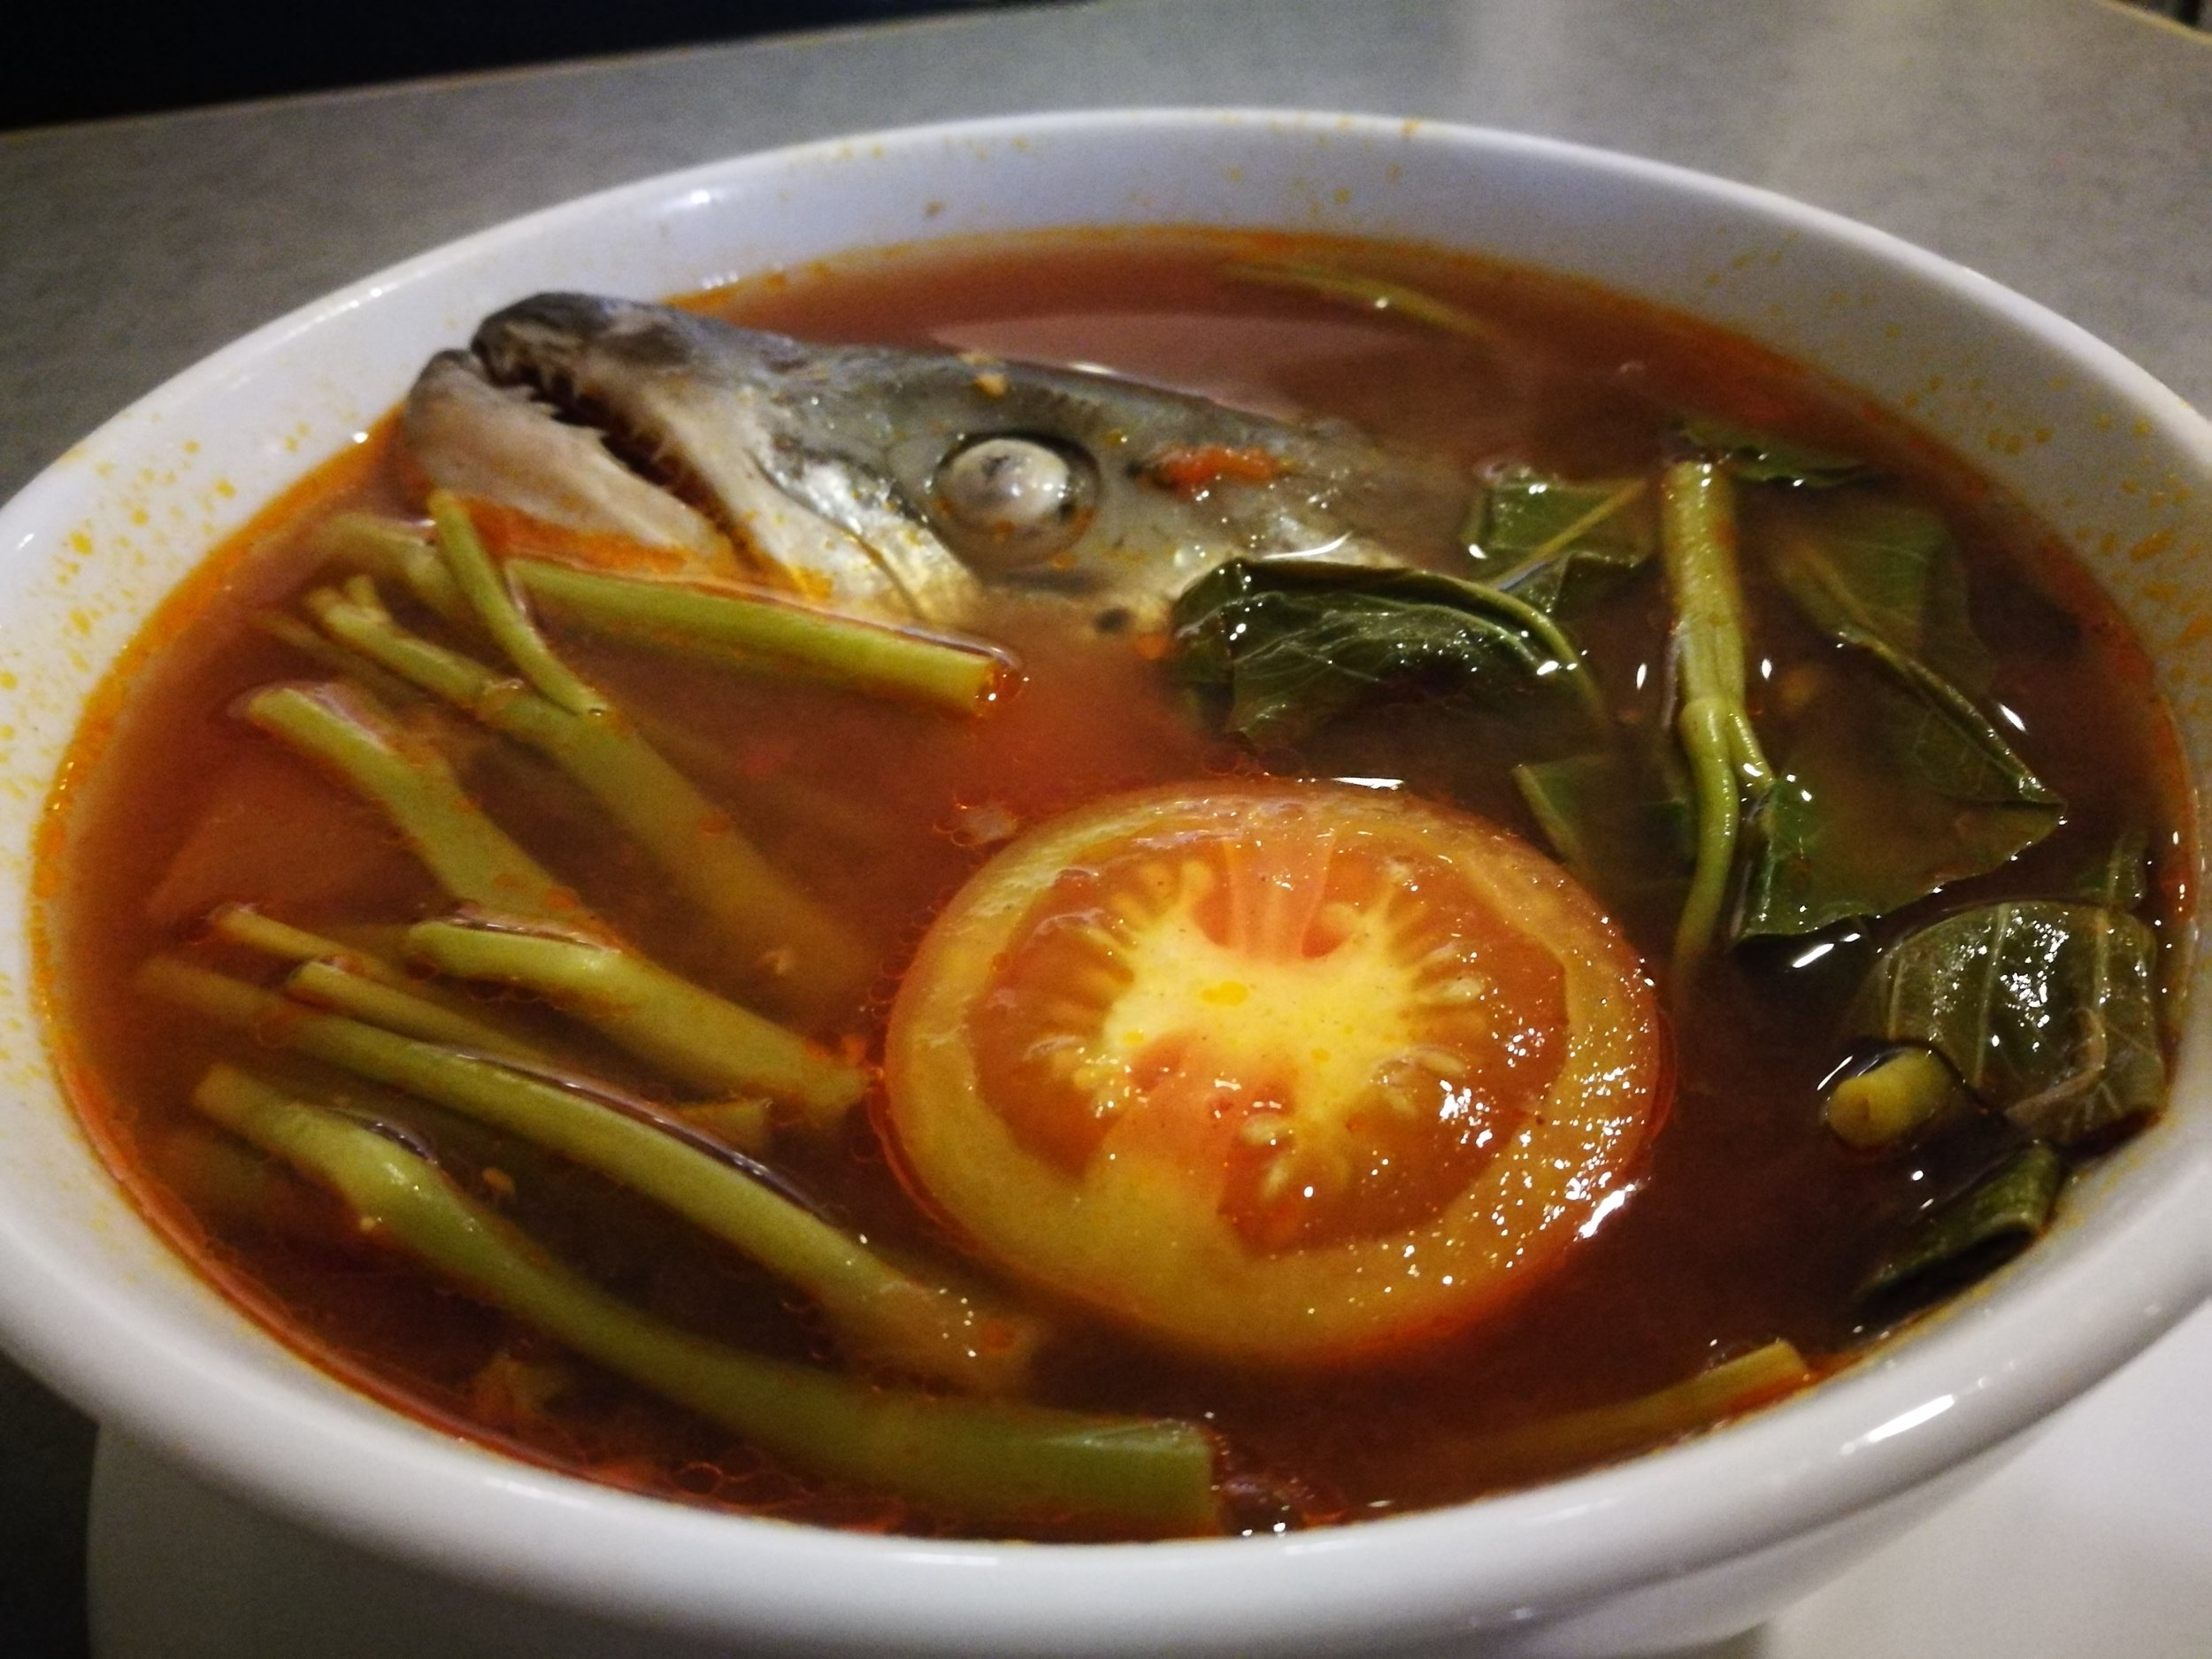 Sinigang na ulo ng salmon at Yellowfin in Davao is chock-full of vegetables; a one dish meal